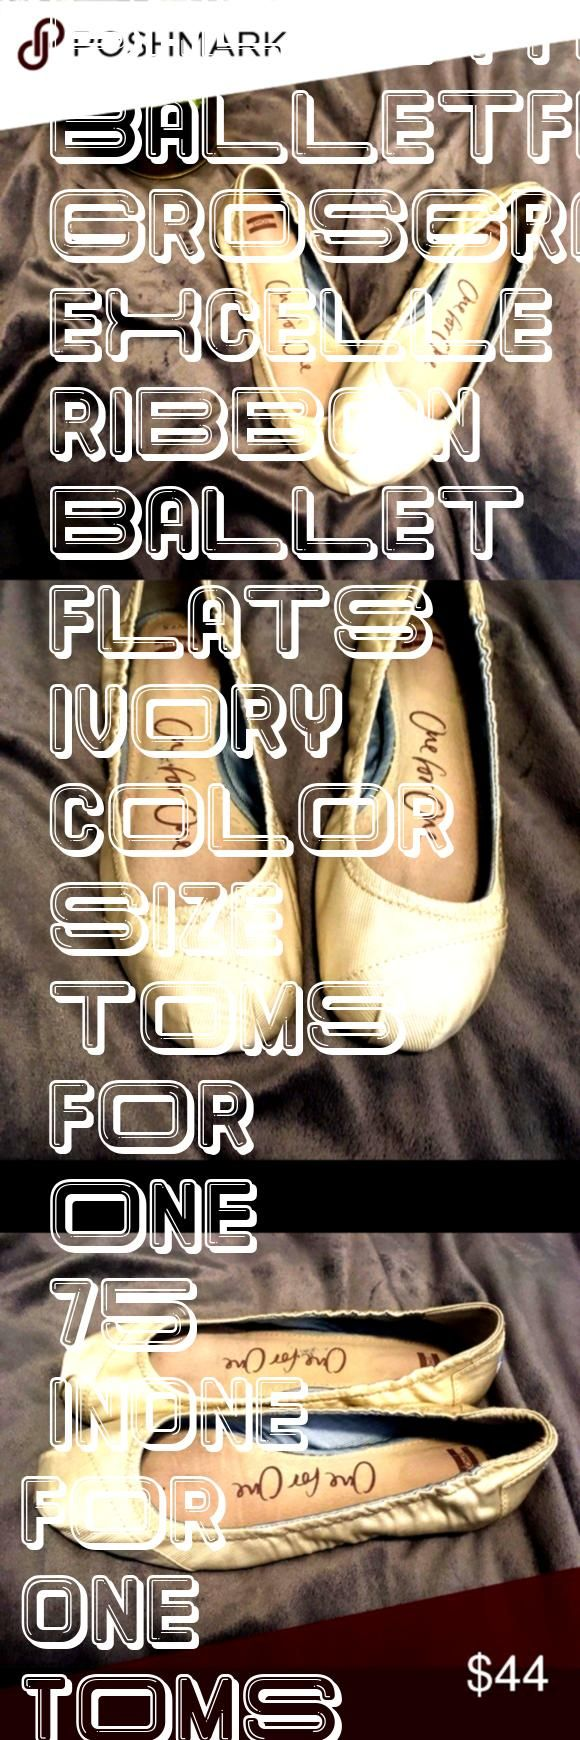 for One Toms Grosgrain Ribbon ballet flats Ivory in color size 75 excelle  One for One Toms Grosgrain Ribbon ballet flats Ivory in color size 75 excelle   Metallic gold s...